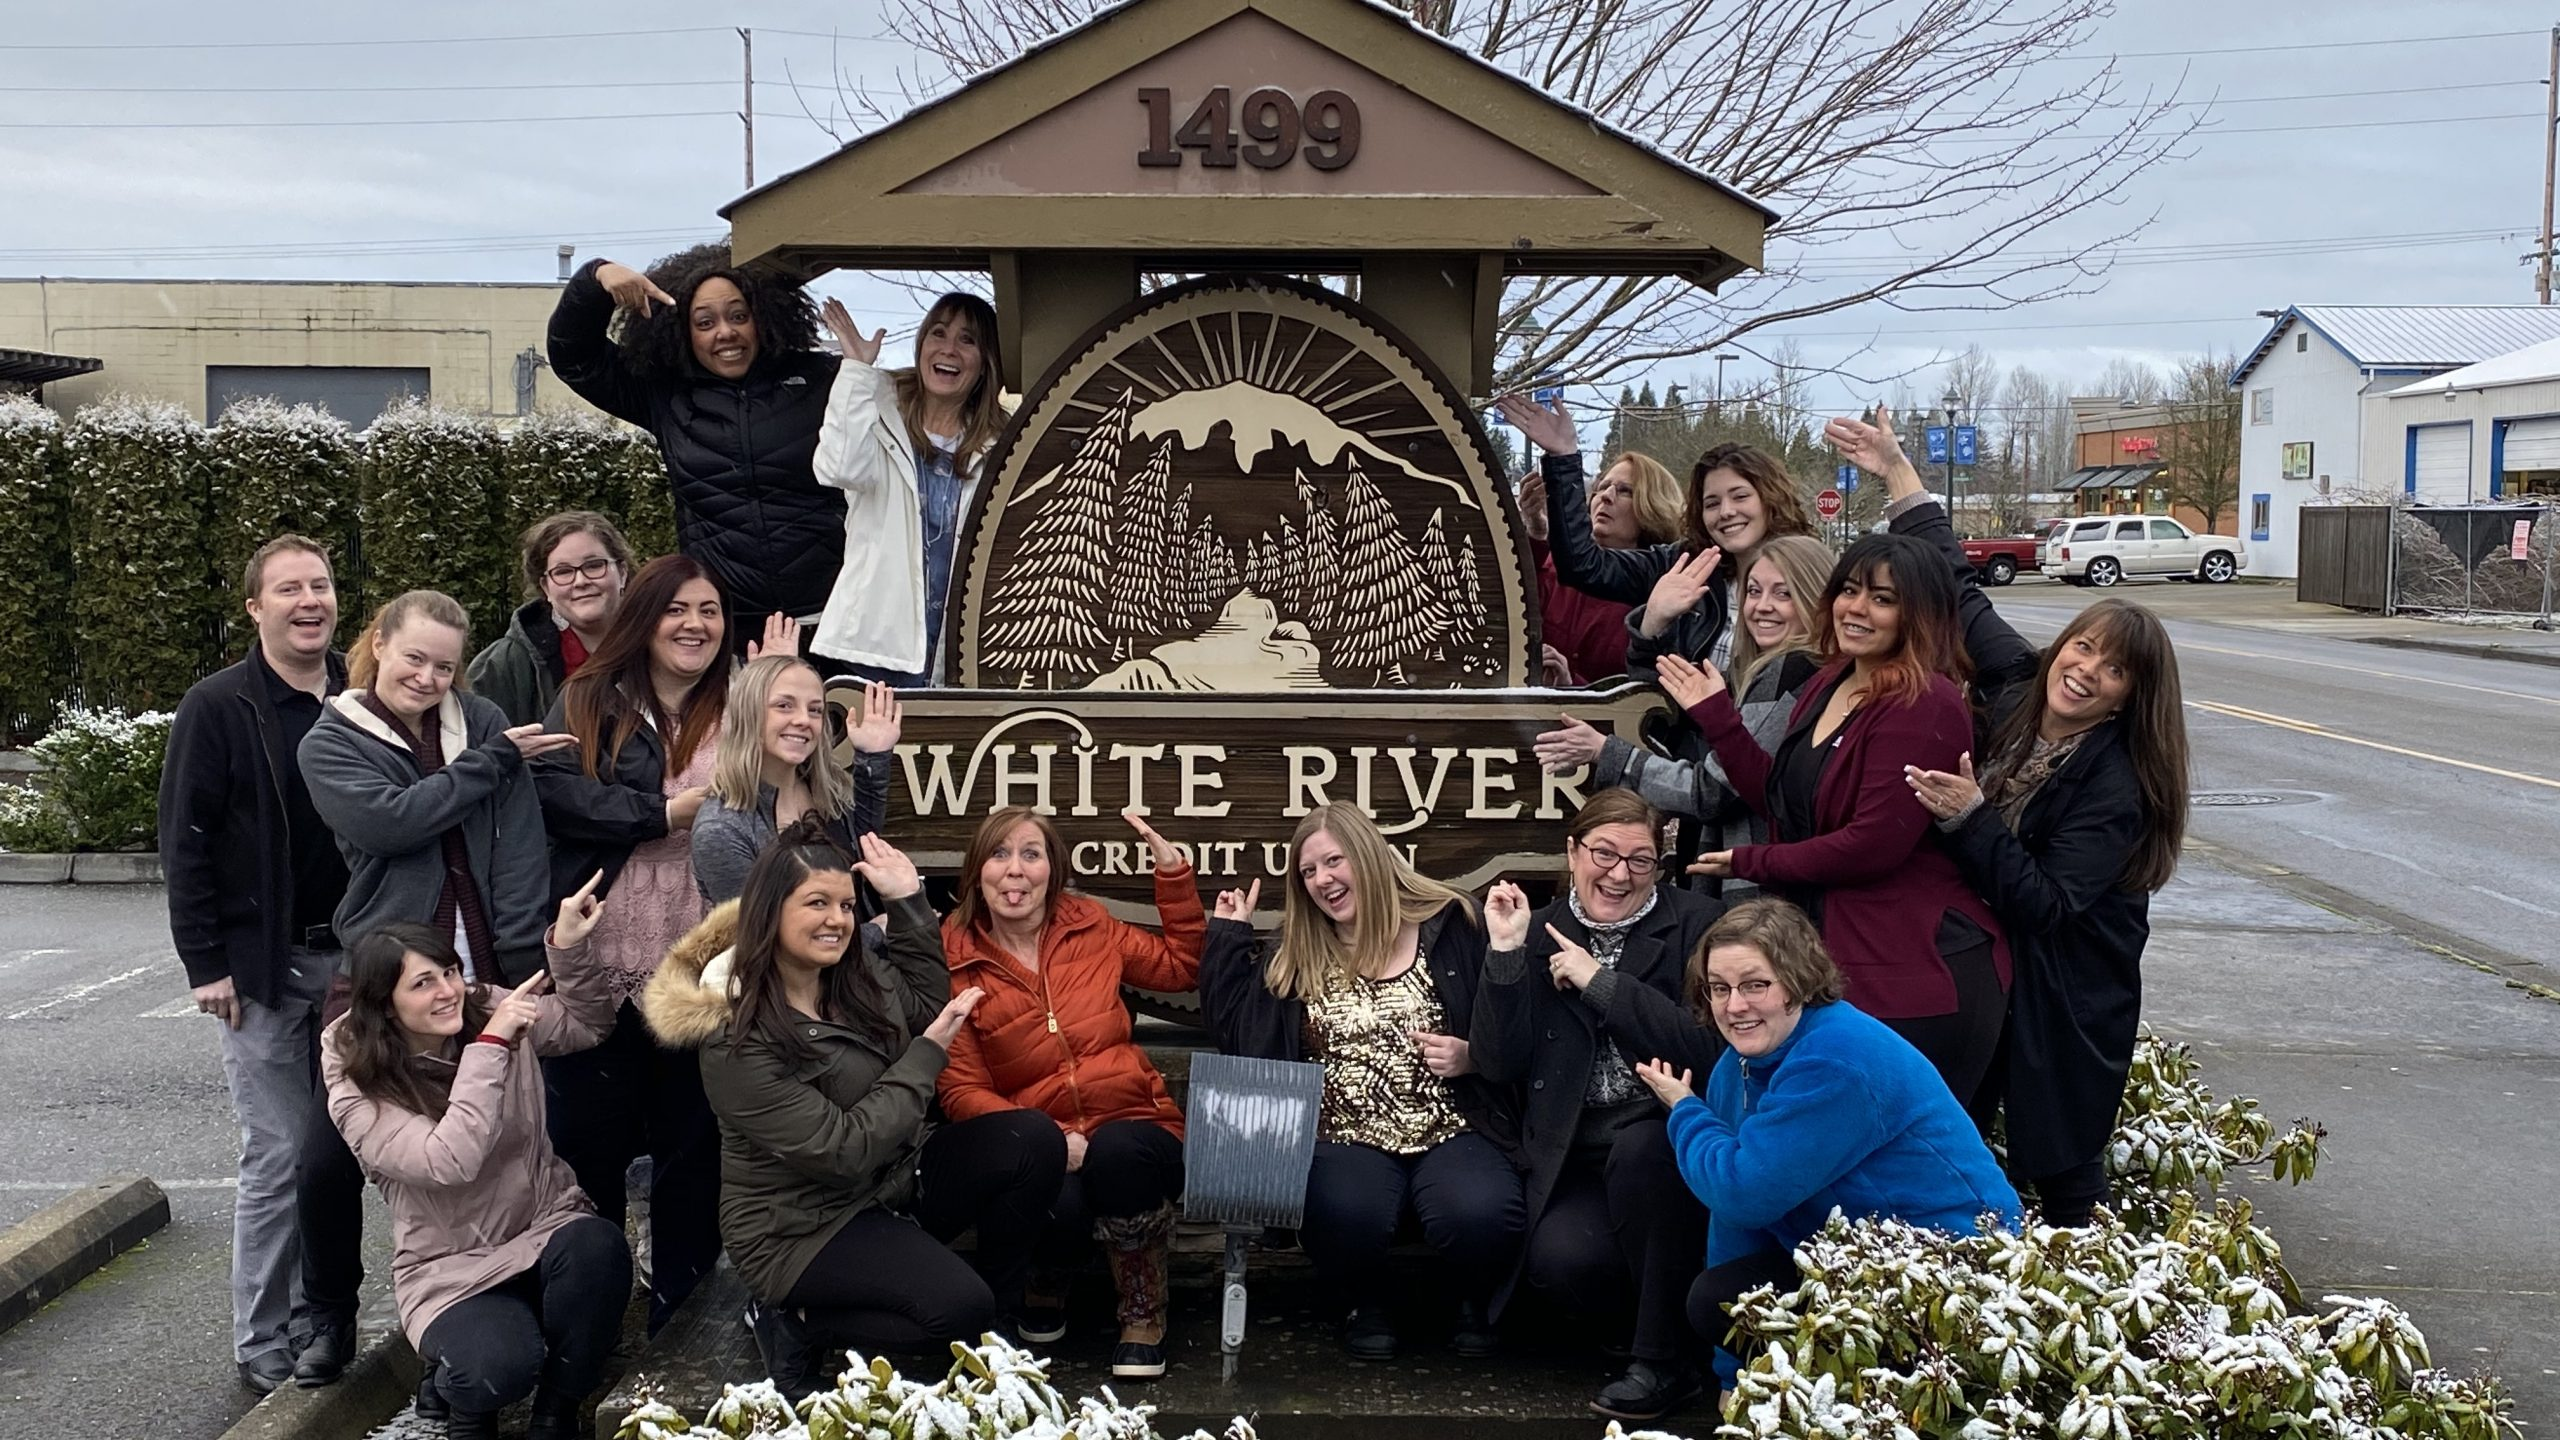 White river credit union employees posing outside